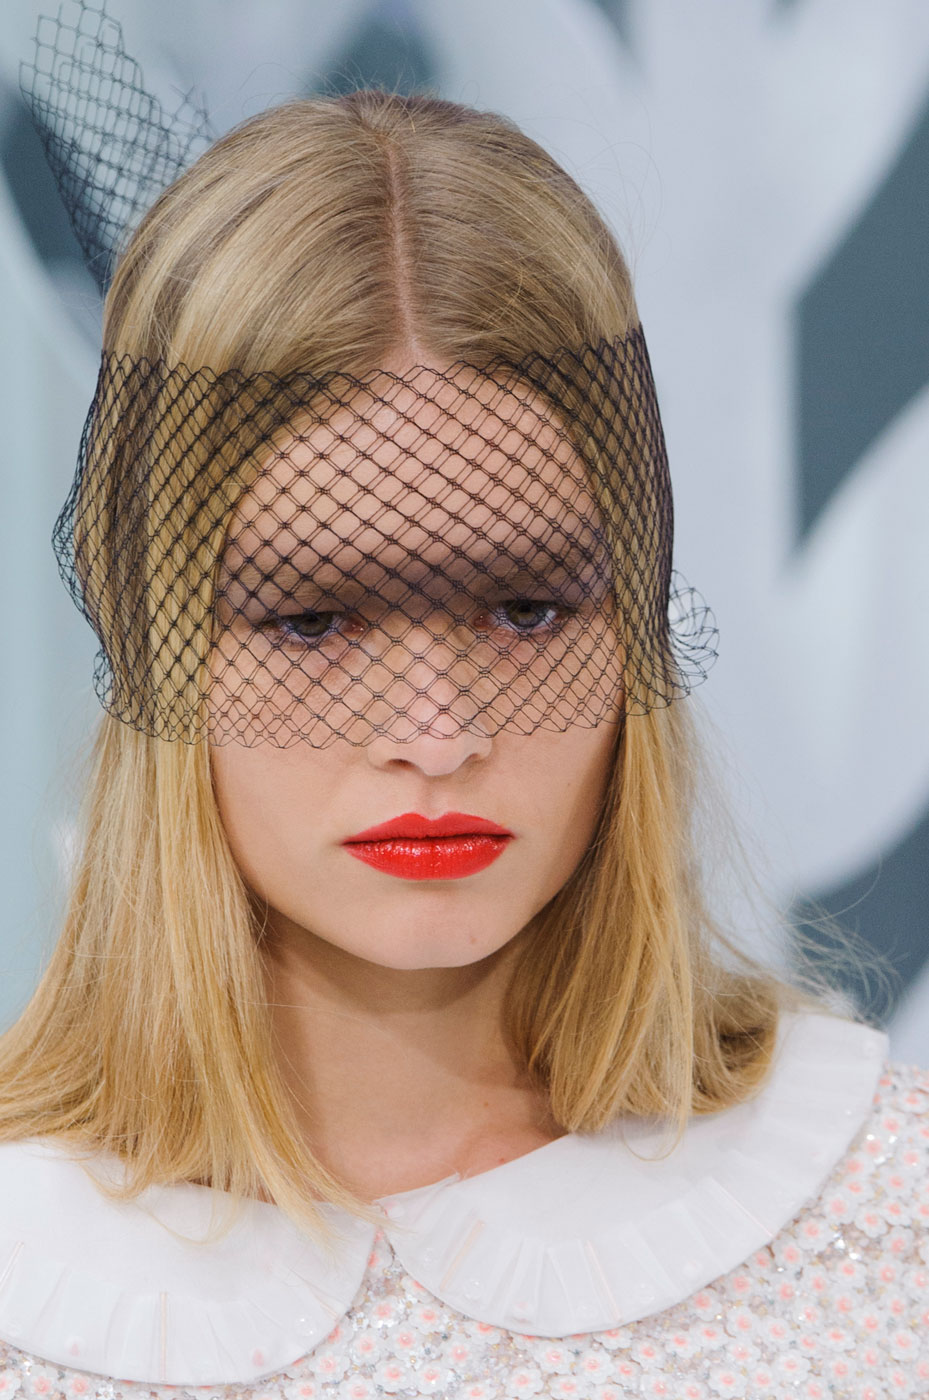 Chanel-fashion-runway-show-close-ups-haute-couture-paris-spring-summer-2015-the-impression-138